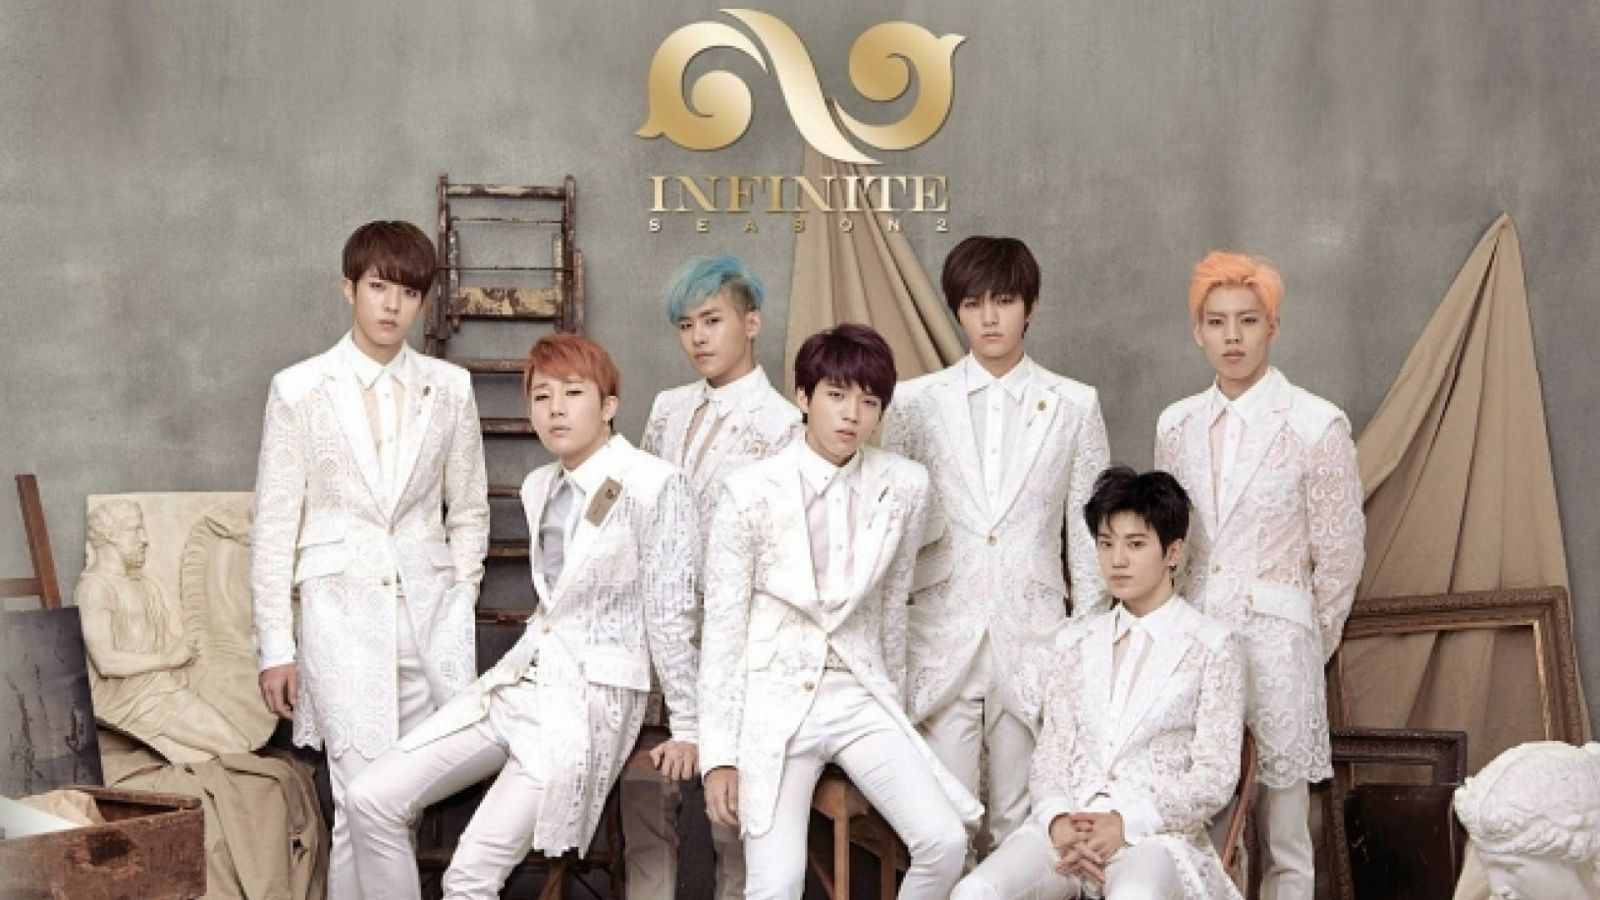 INFINITE está de volta © S.M. CULTURE & CONTENTS CO., LTD. WOOLLIM ENTERTAINMENT